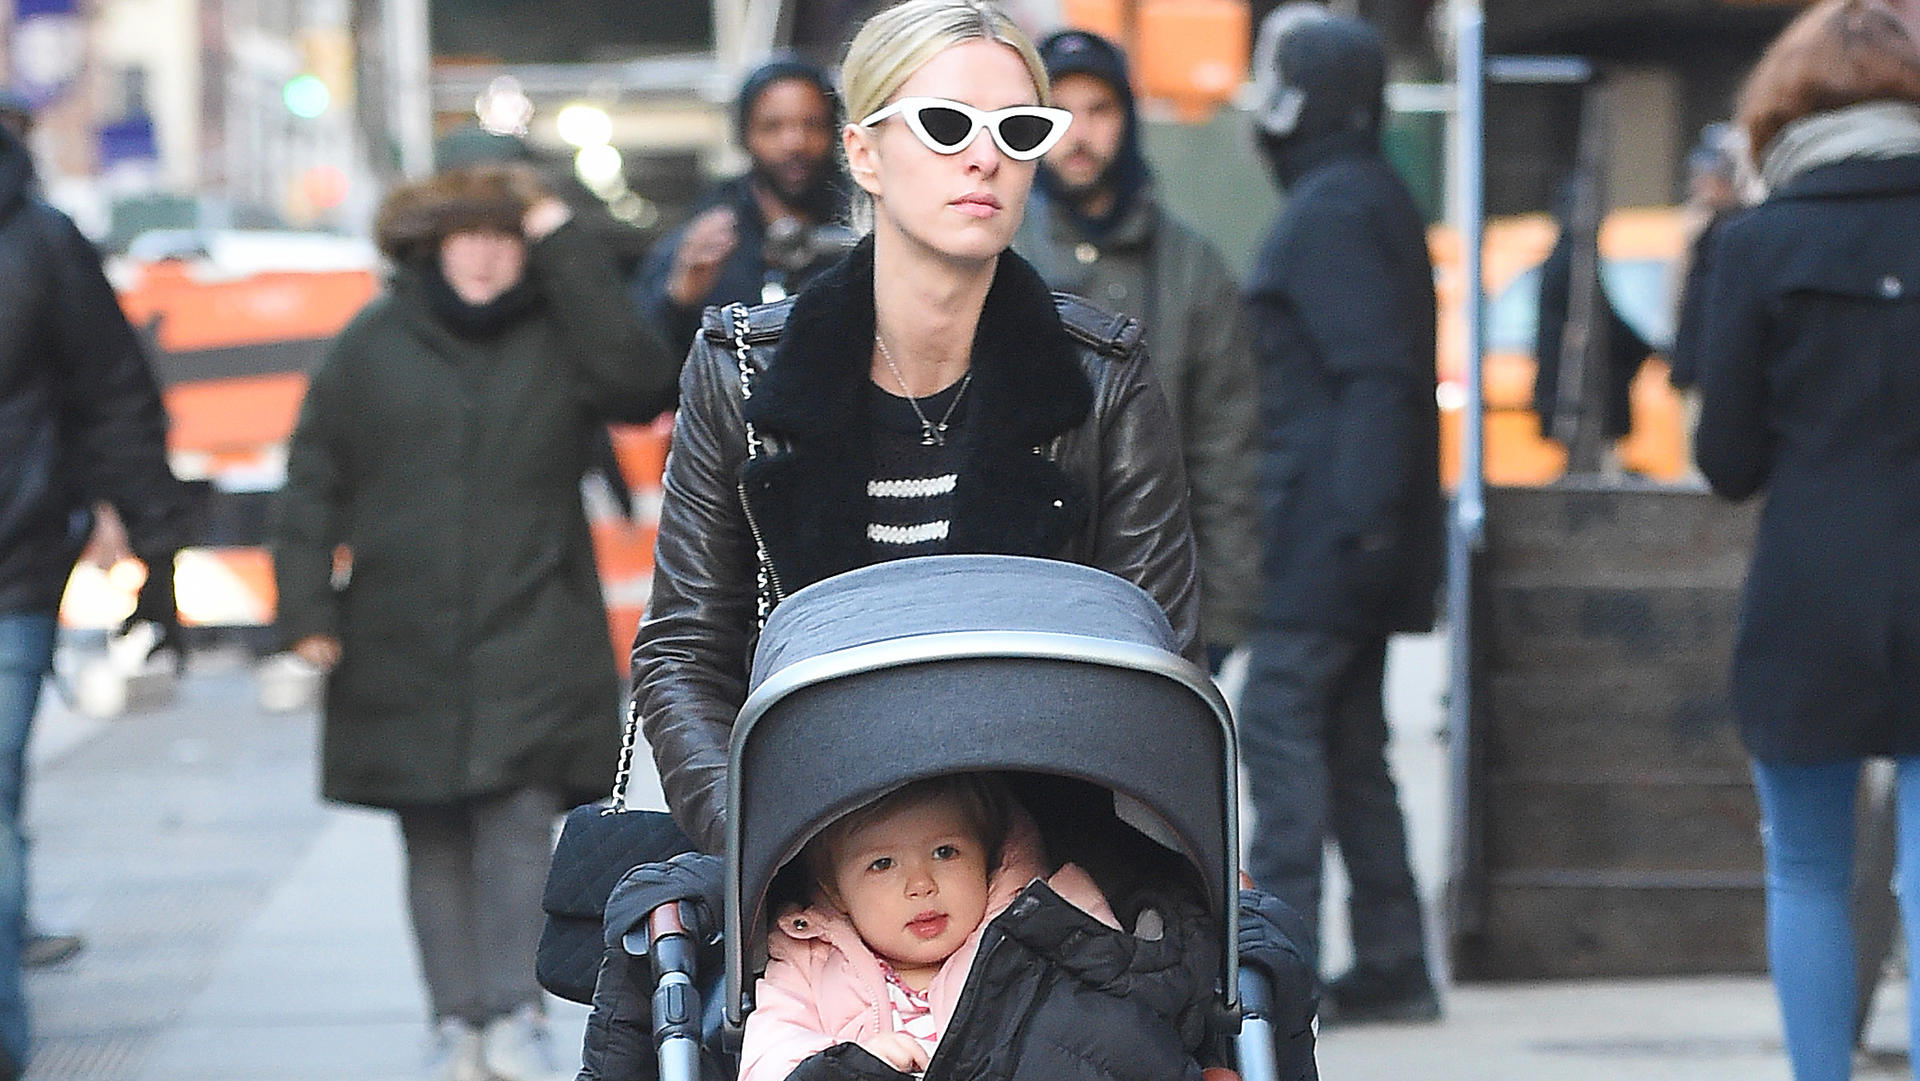 Nicky Hilton and daughter Lily Grace Rothschild take a stroll in New York City